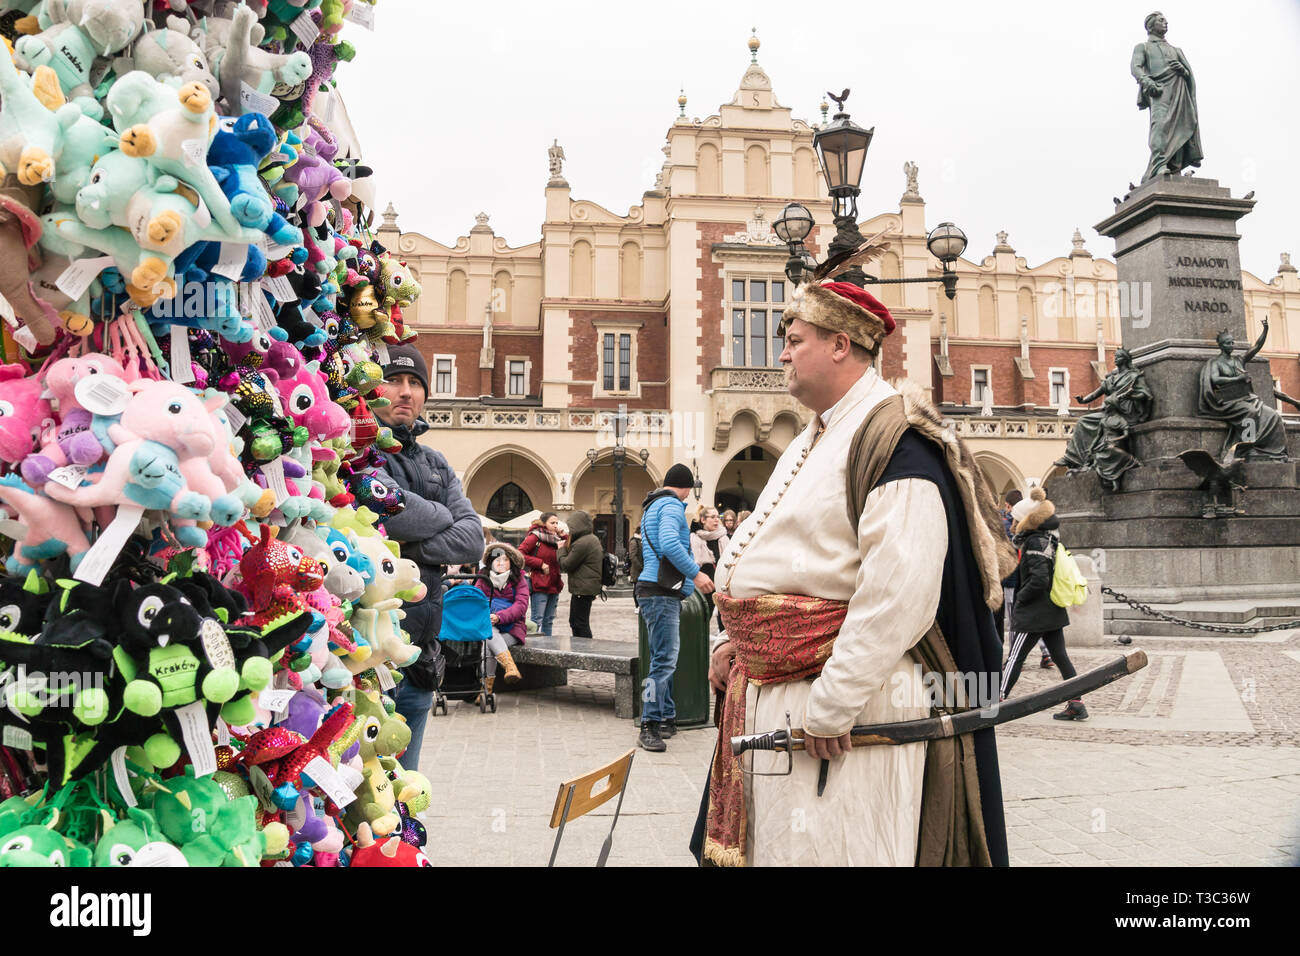 Krakow, Poland - March 22, 2019 - souvenirs, artist in traditional costume and Adam Mickiewicz Monument on Main Market Square Stock Photo